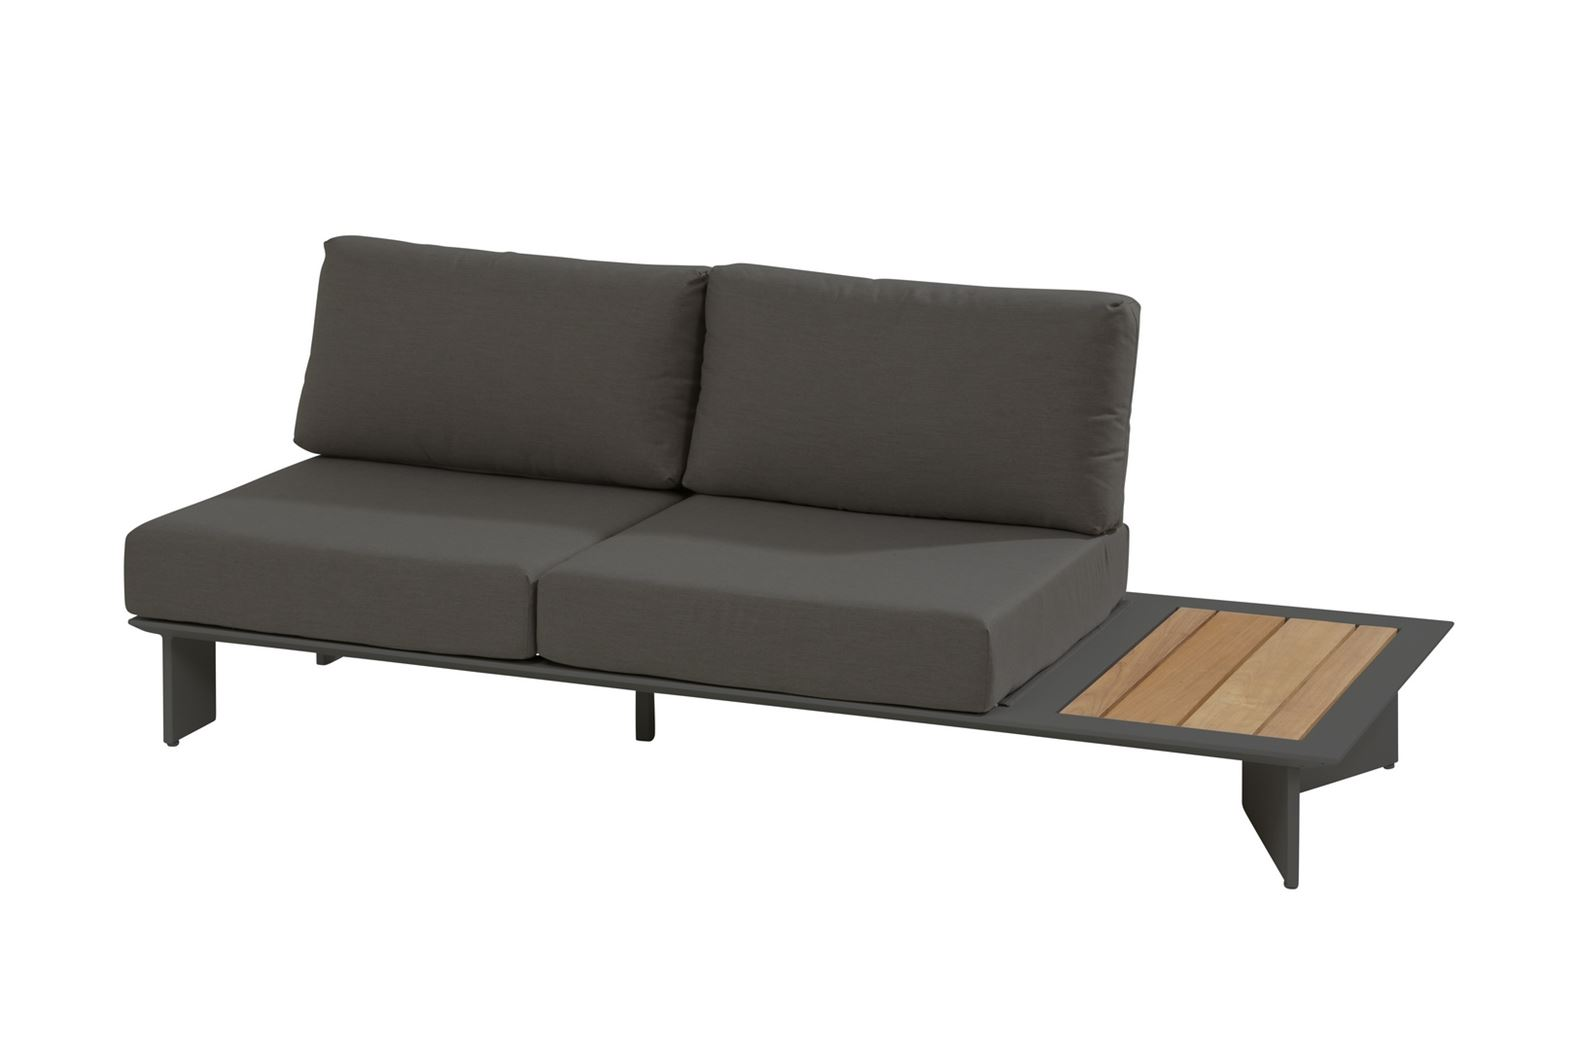 4so lovina platform 2.5 seater l with teak with 4 cushions matt carbon